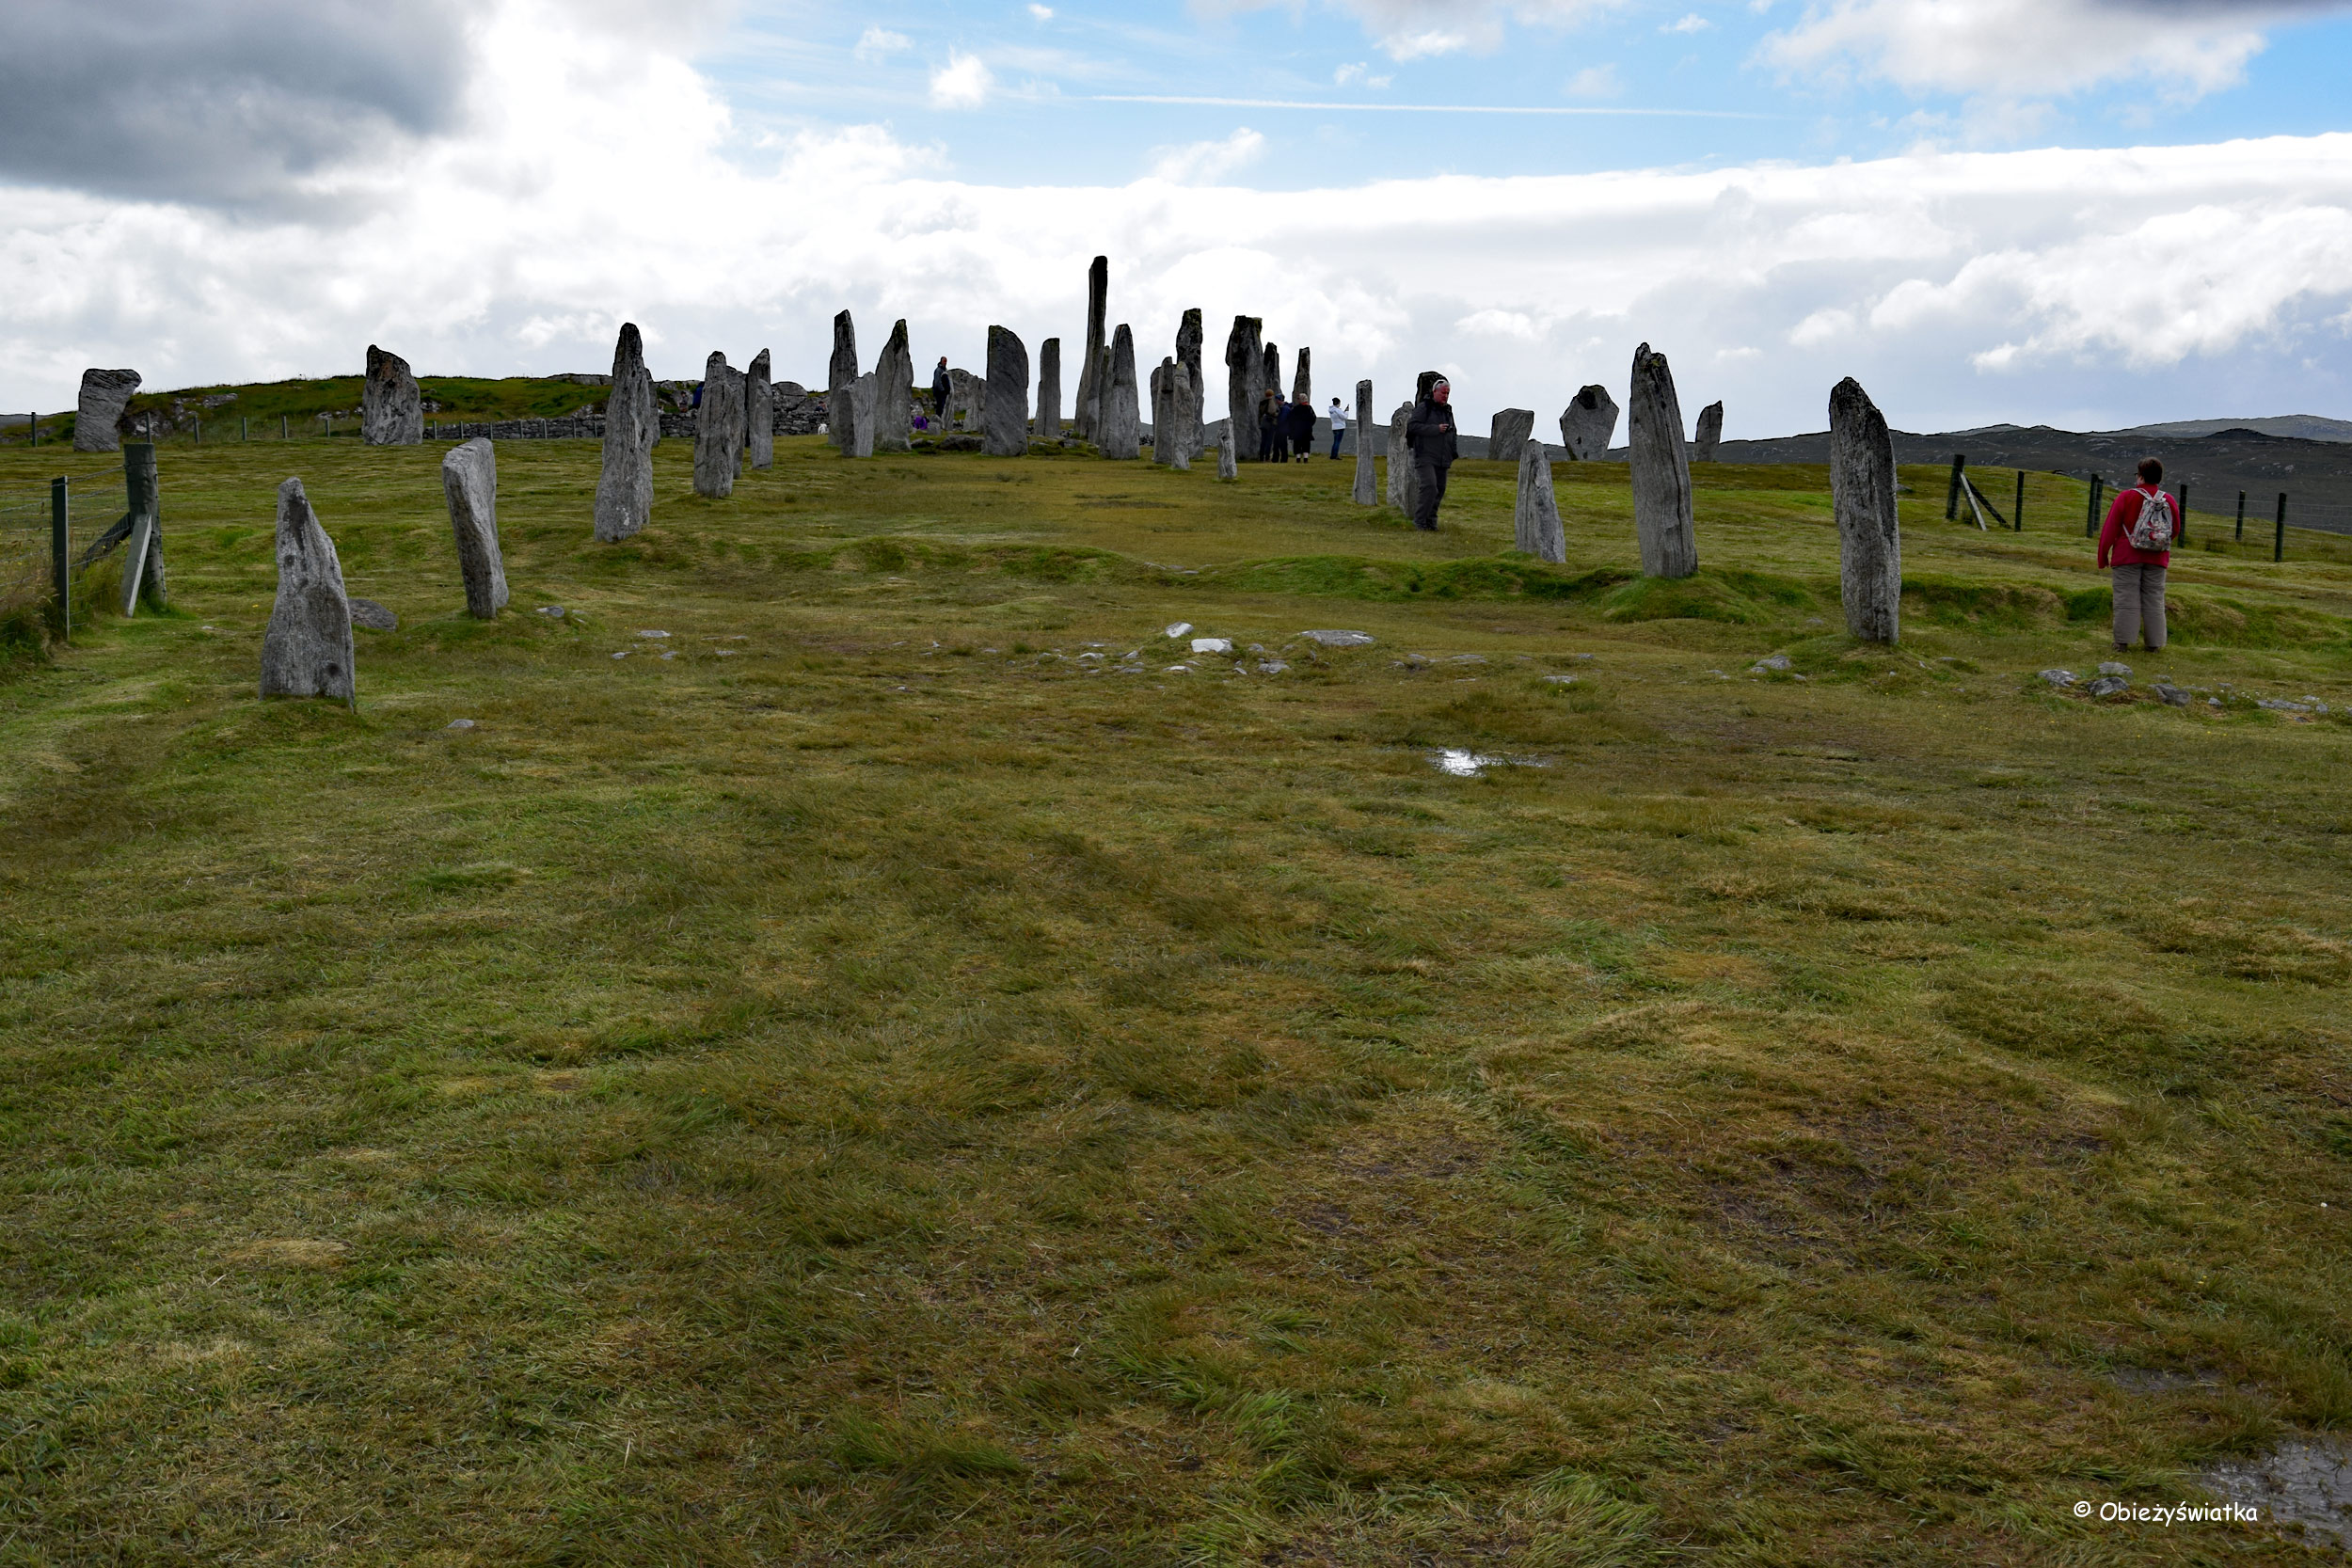 Kamienny krąg Callanish/Calanais, Lewis and Harris